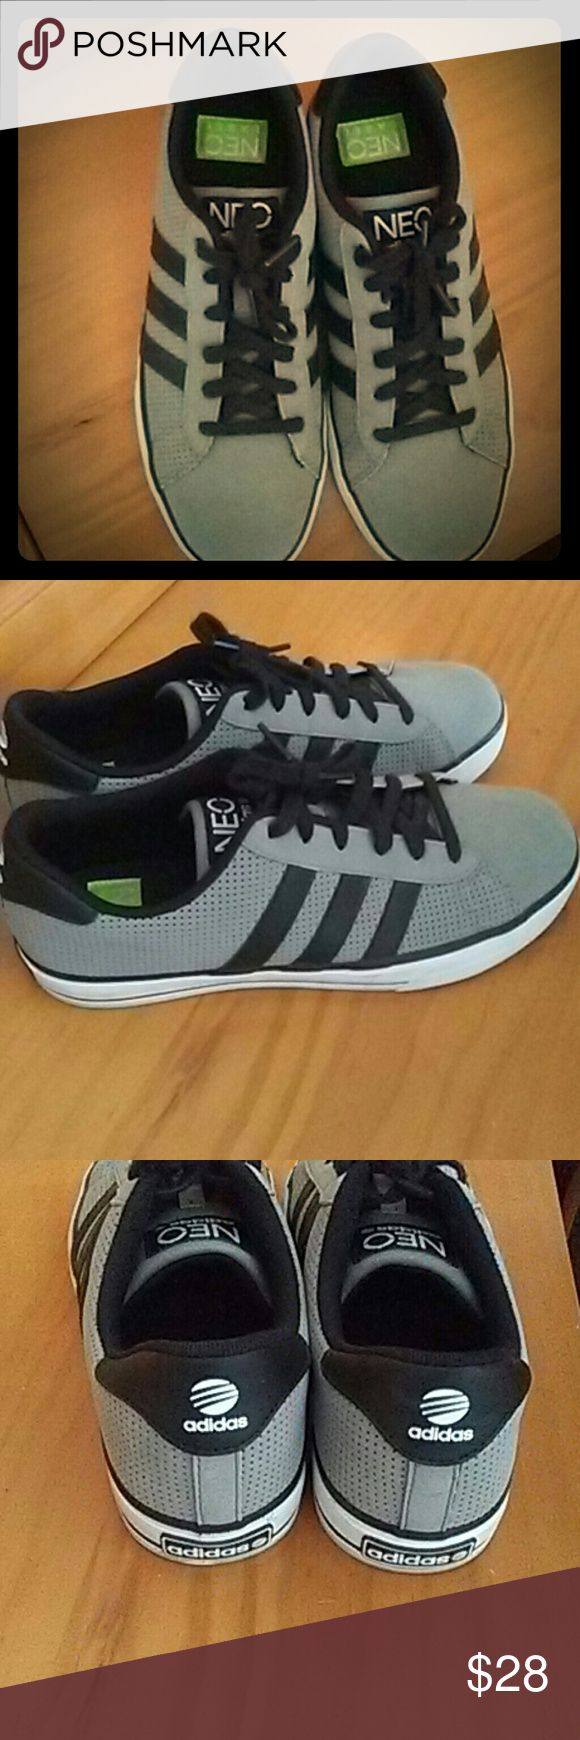 New Adidas Neo! New without tags Adidas Neo! Super comfy with ortholite comfort insoles. Unisex... Size 8 in mens, 10 in womens. adidas Shoes Sneakers